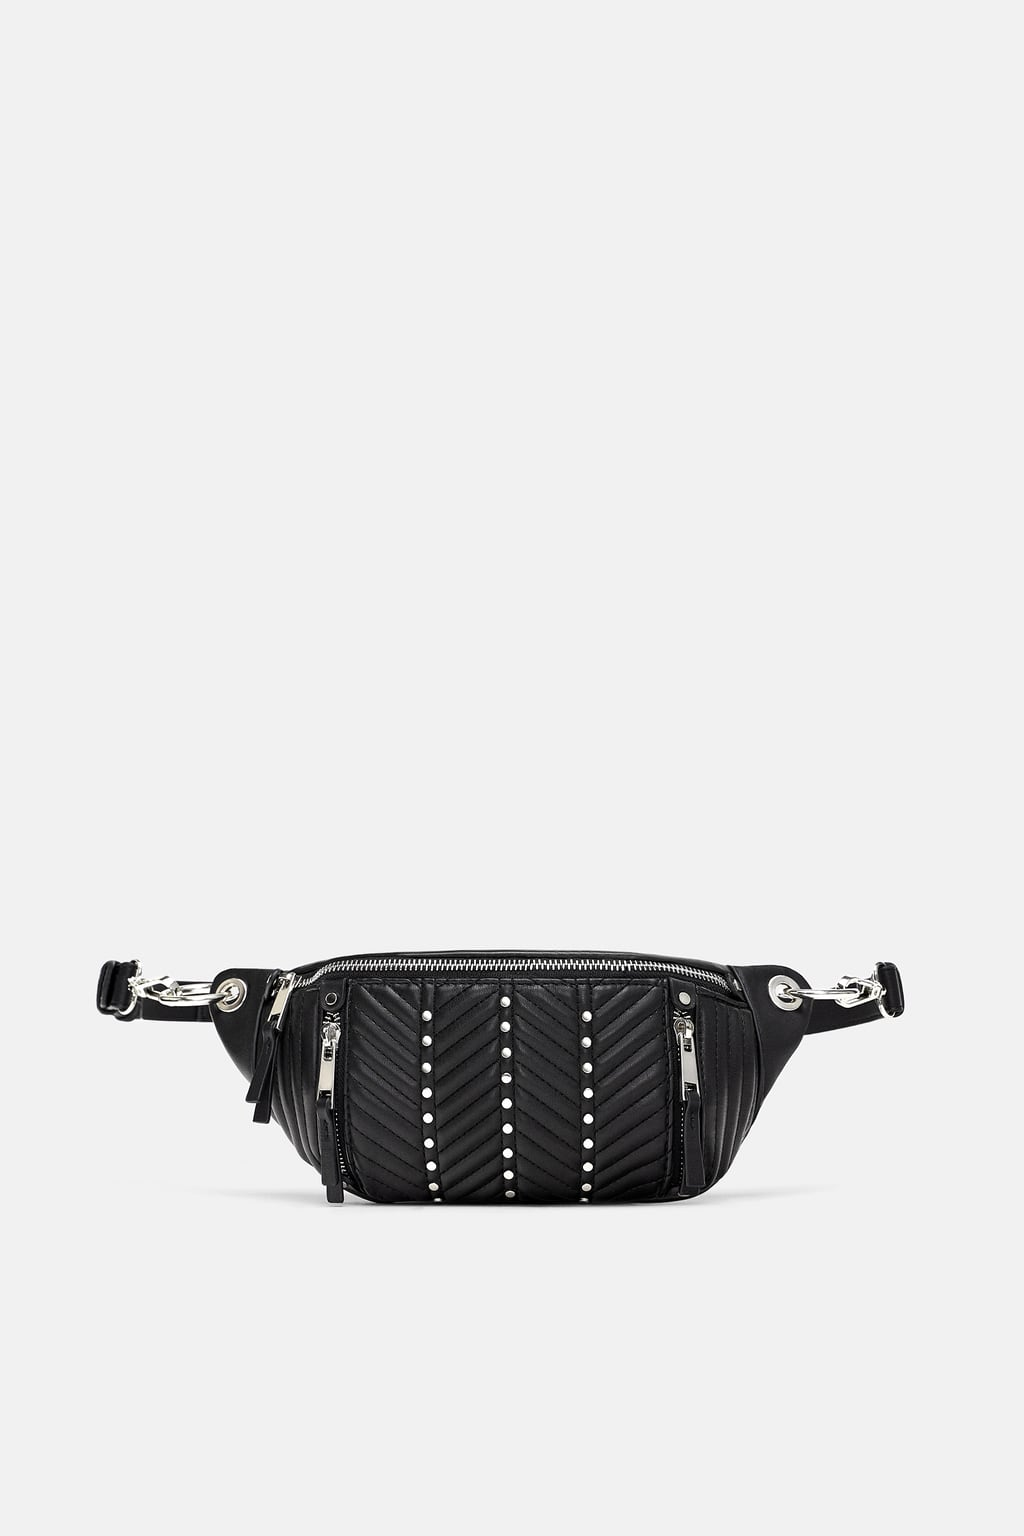 https://www.zara.com/ca/en/belt-bag-with-zippers-p16424304.html?v1=7312398&v2=1074660